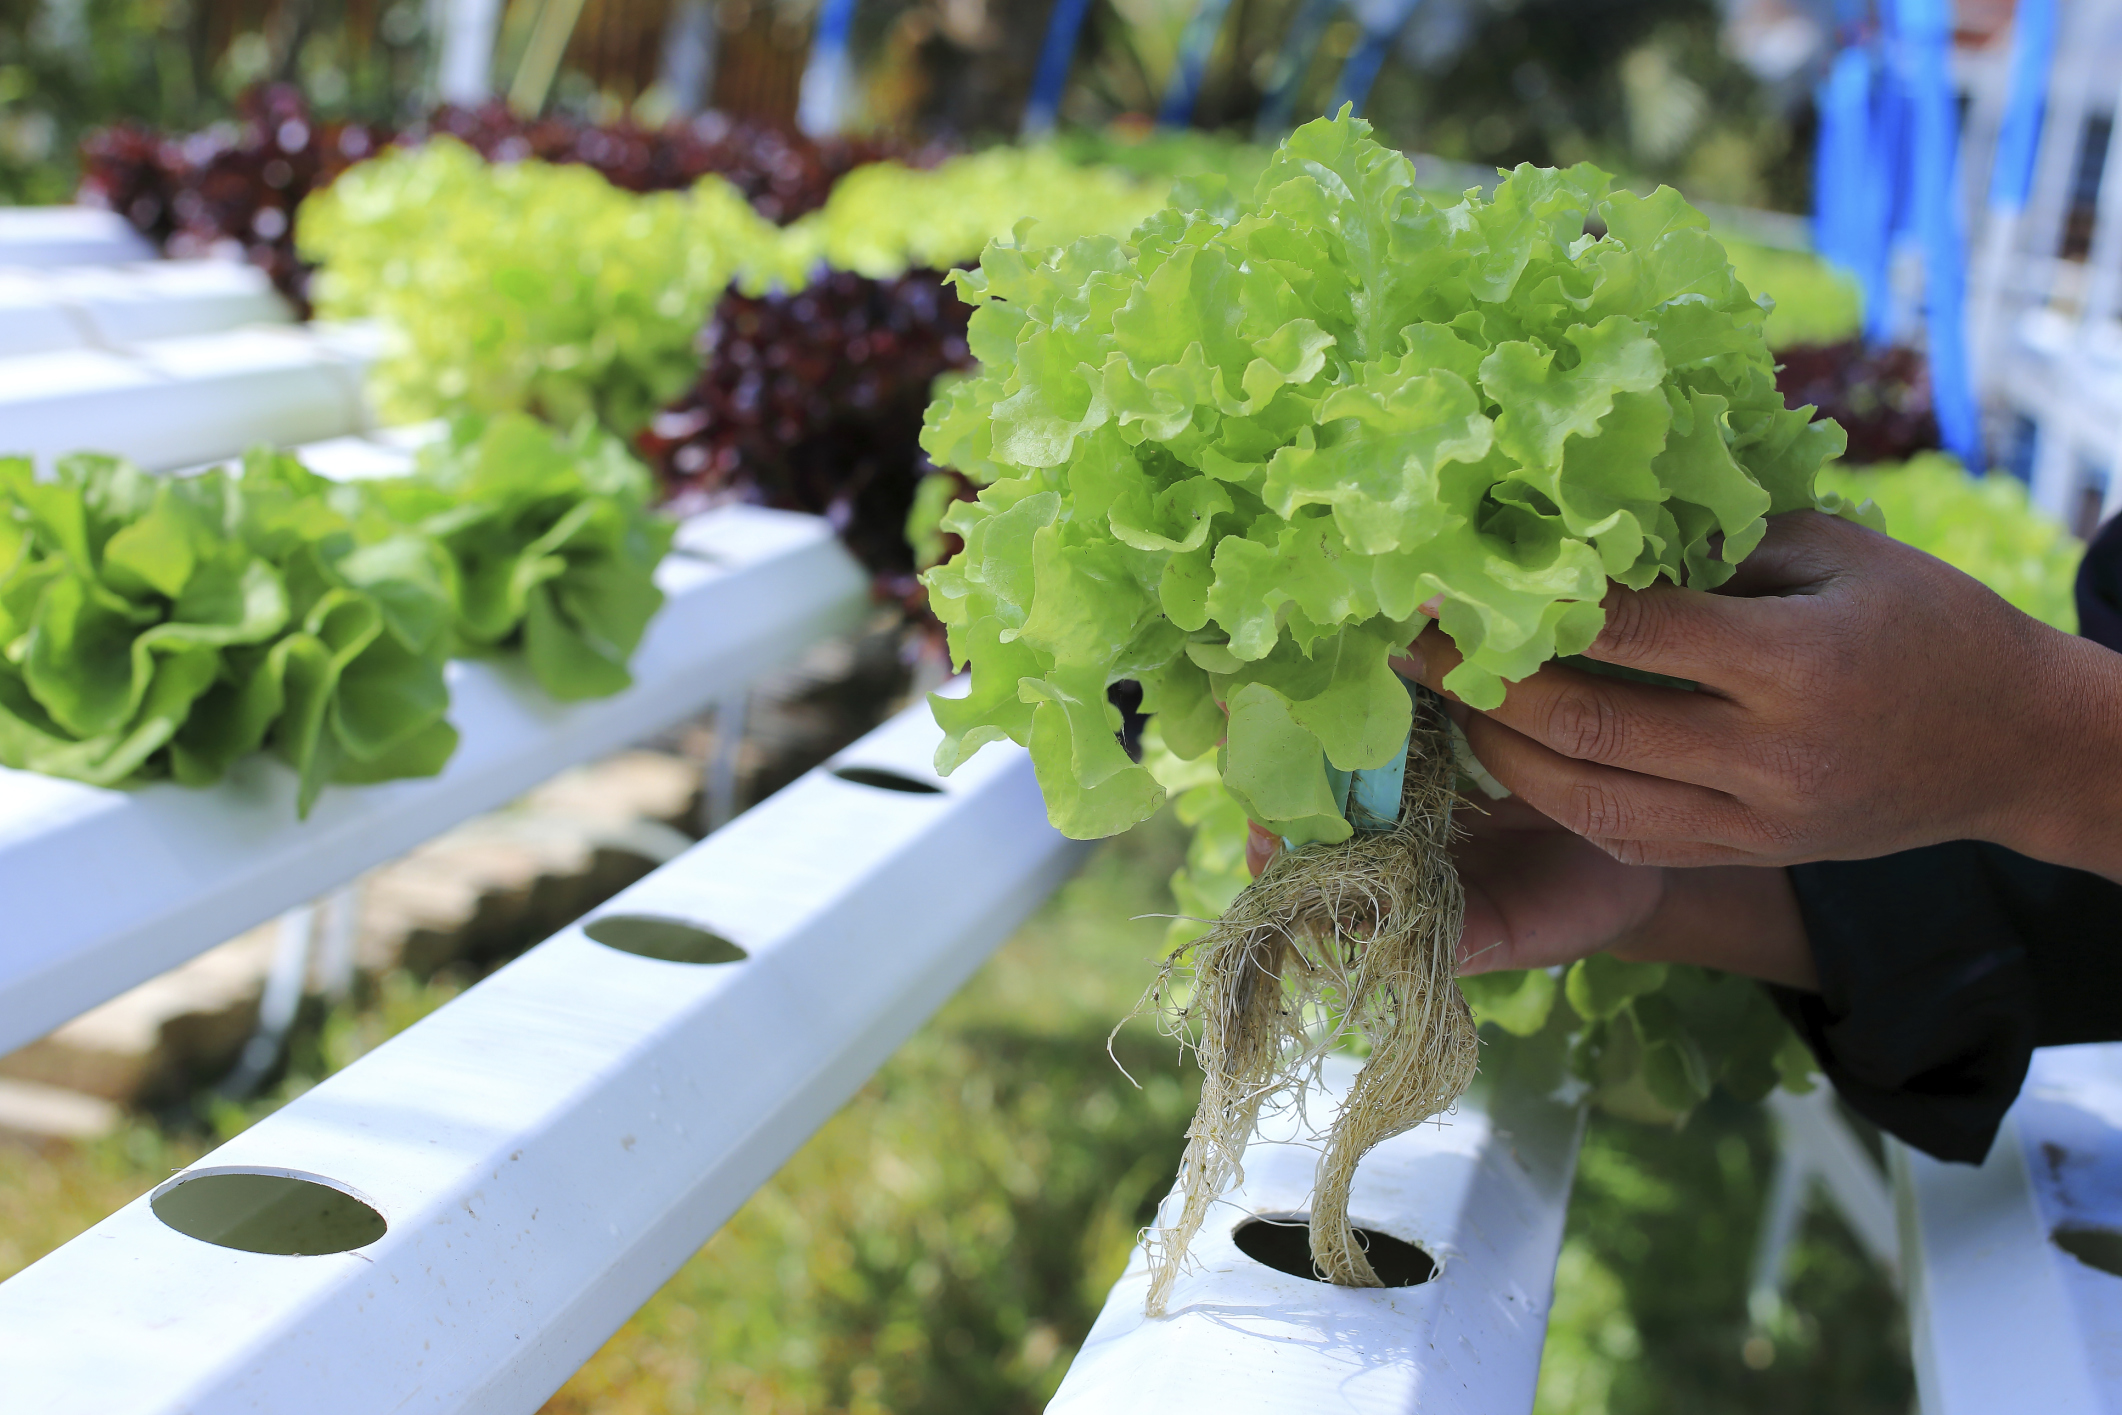 Portable farms take root as new use for shipping containers